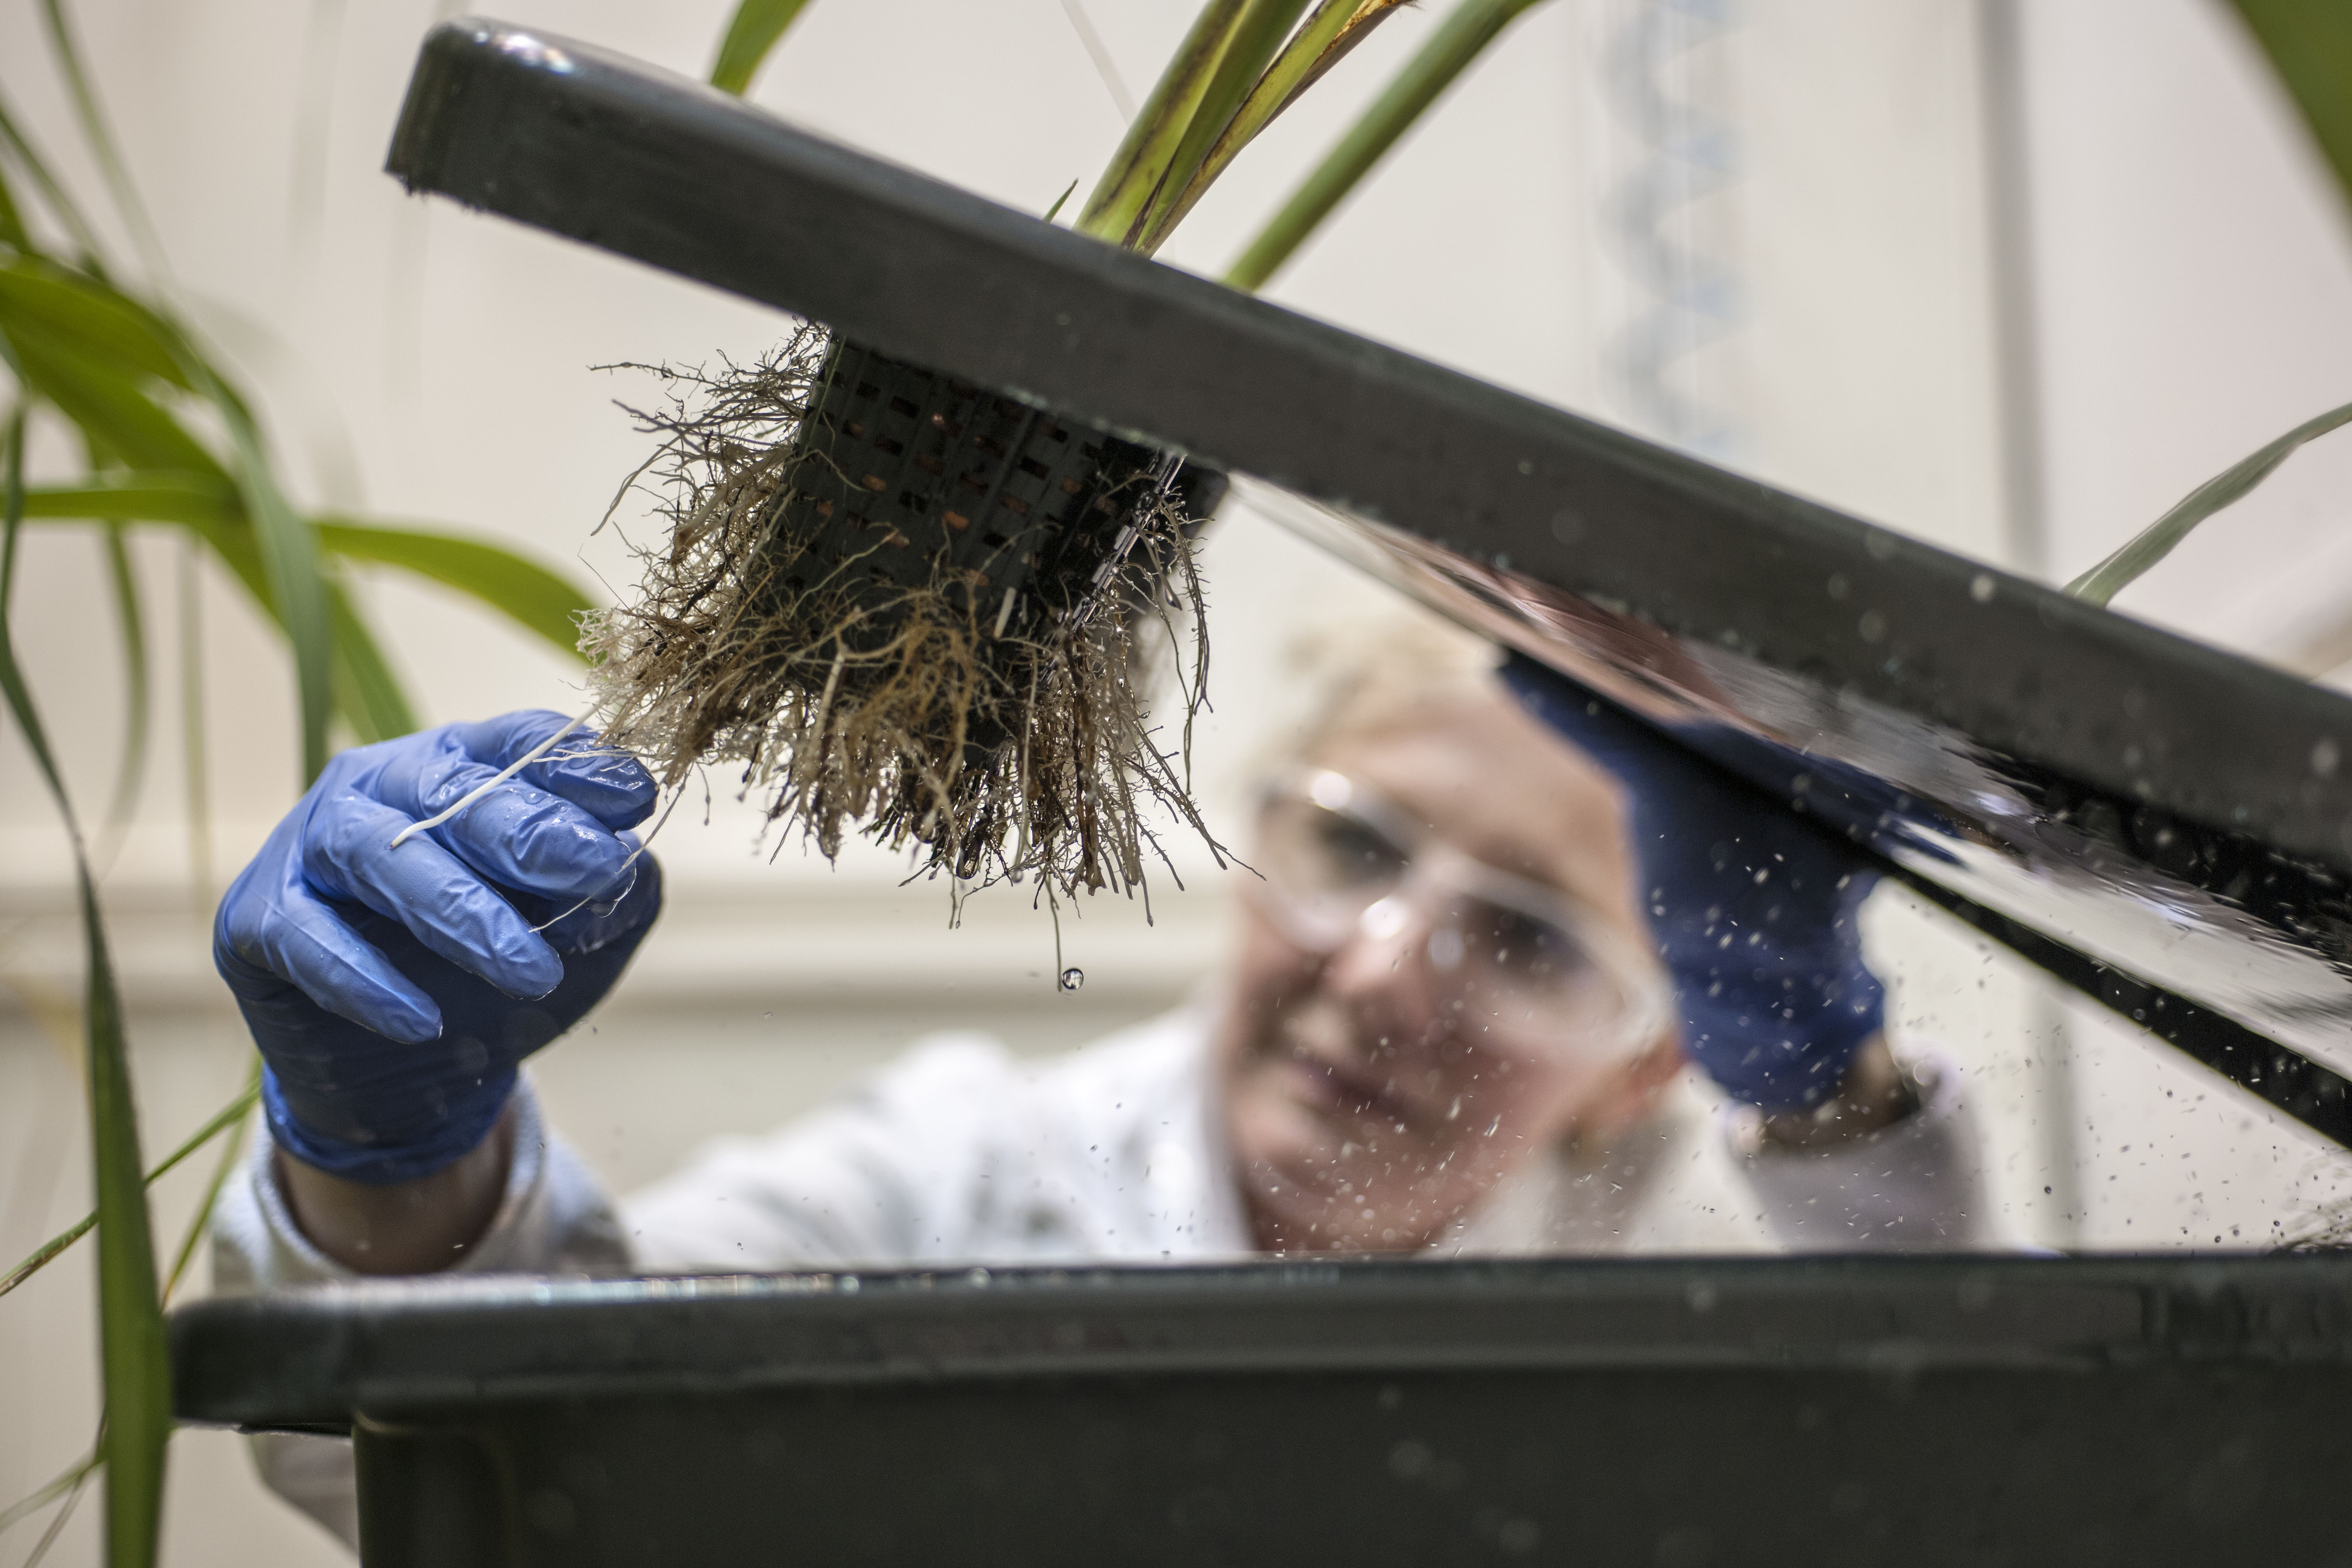 a feamle scientist slight out of focus in the background listing a lid of a large black container through which a sugarcane plant is growing. on the underside of the lid you can see the soil mass and roots fo the sugarcane.